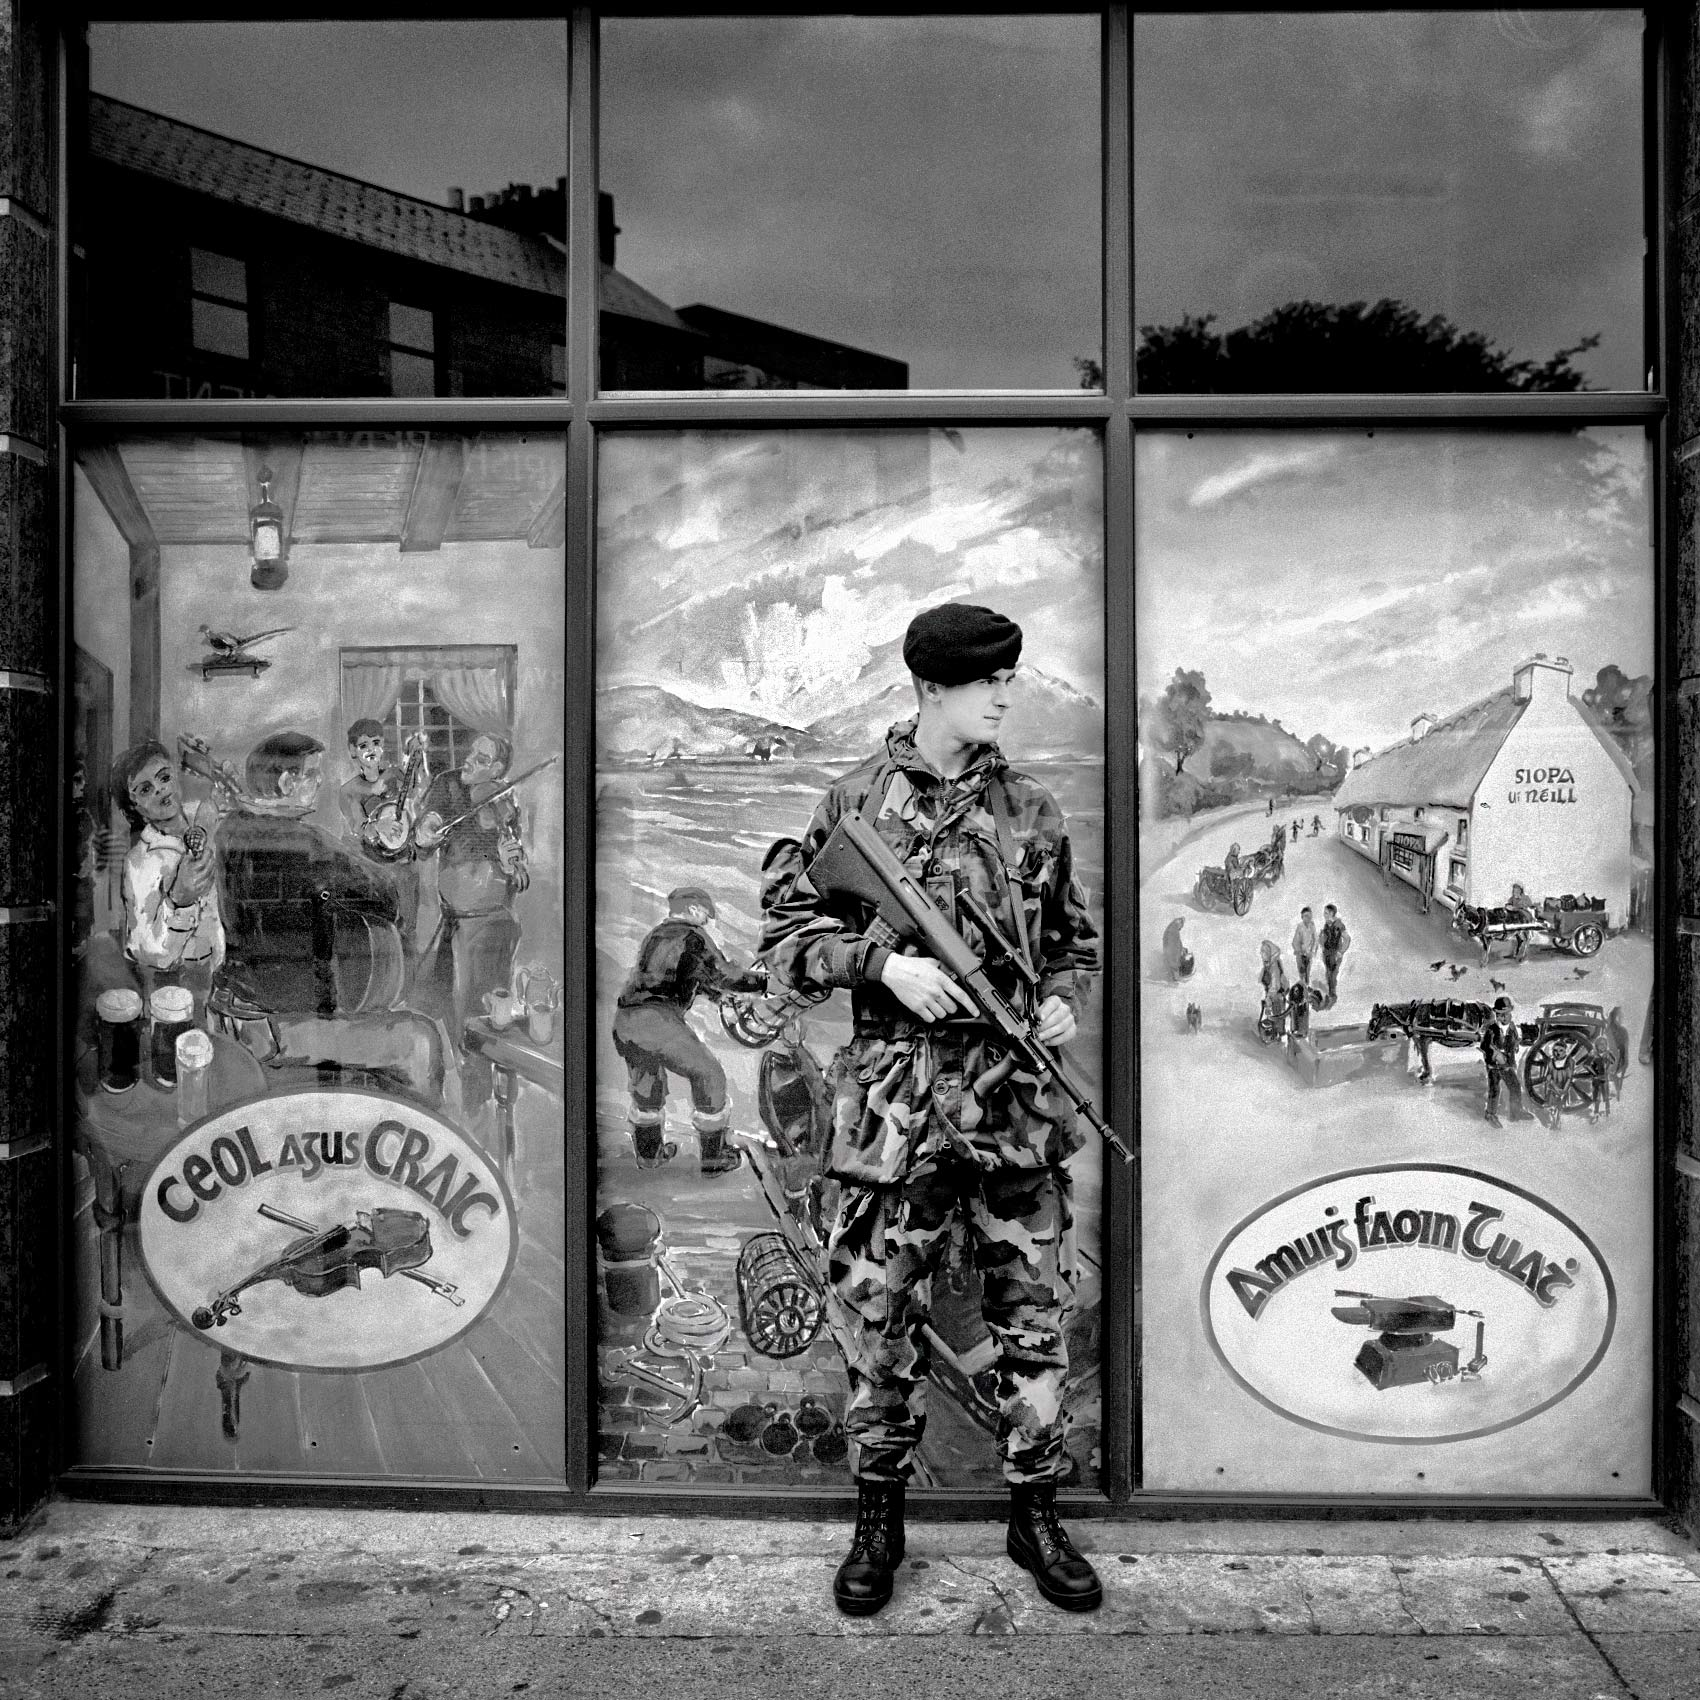 a-irish-soldier-stands-guard-outside-a-bank-in-galway-ireland